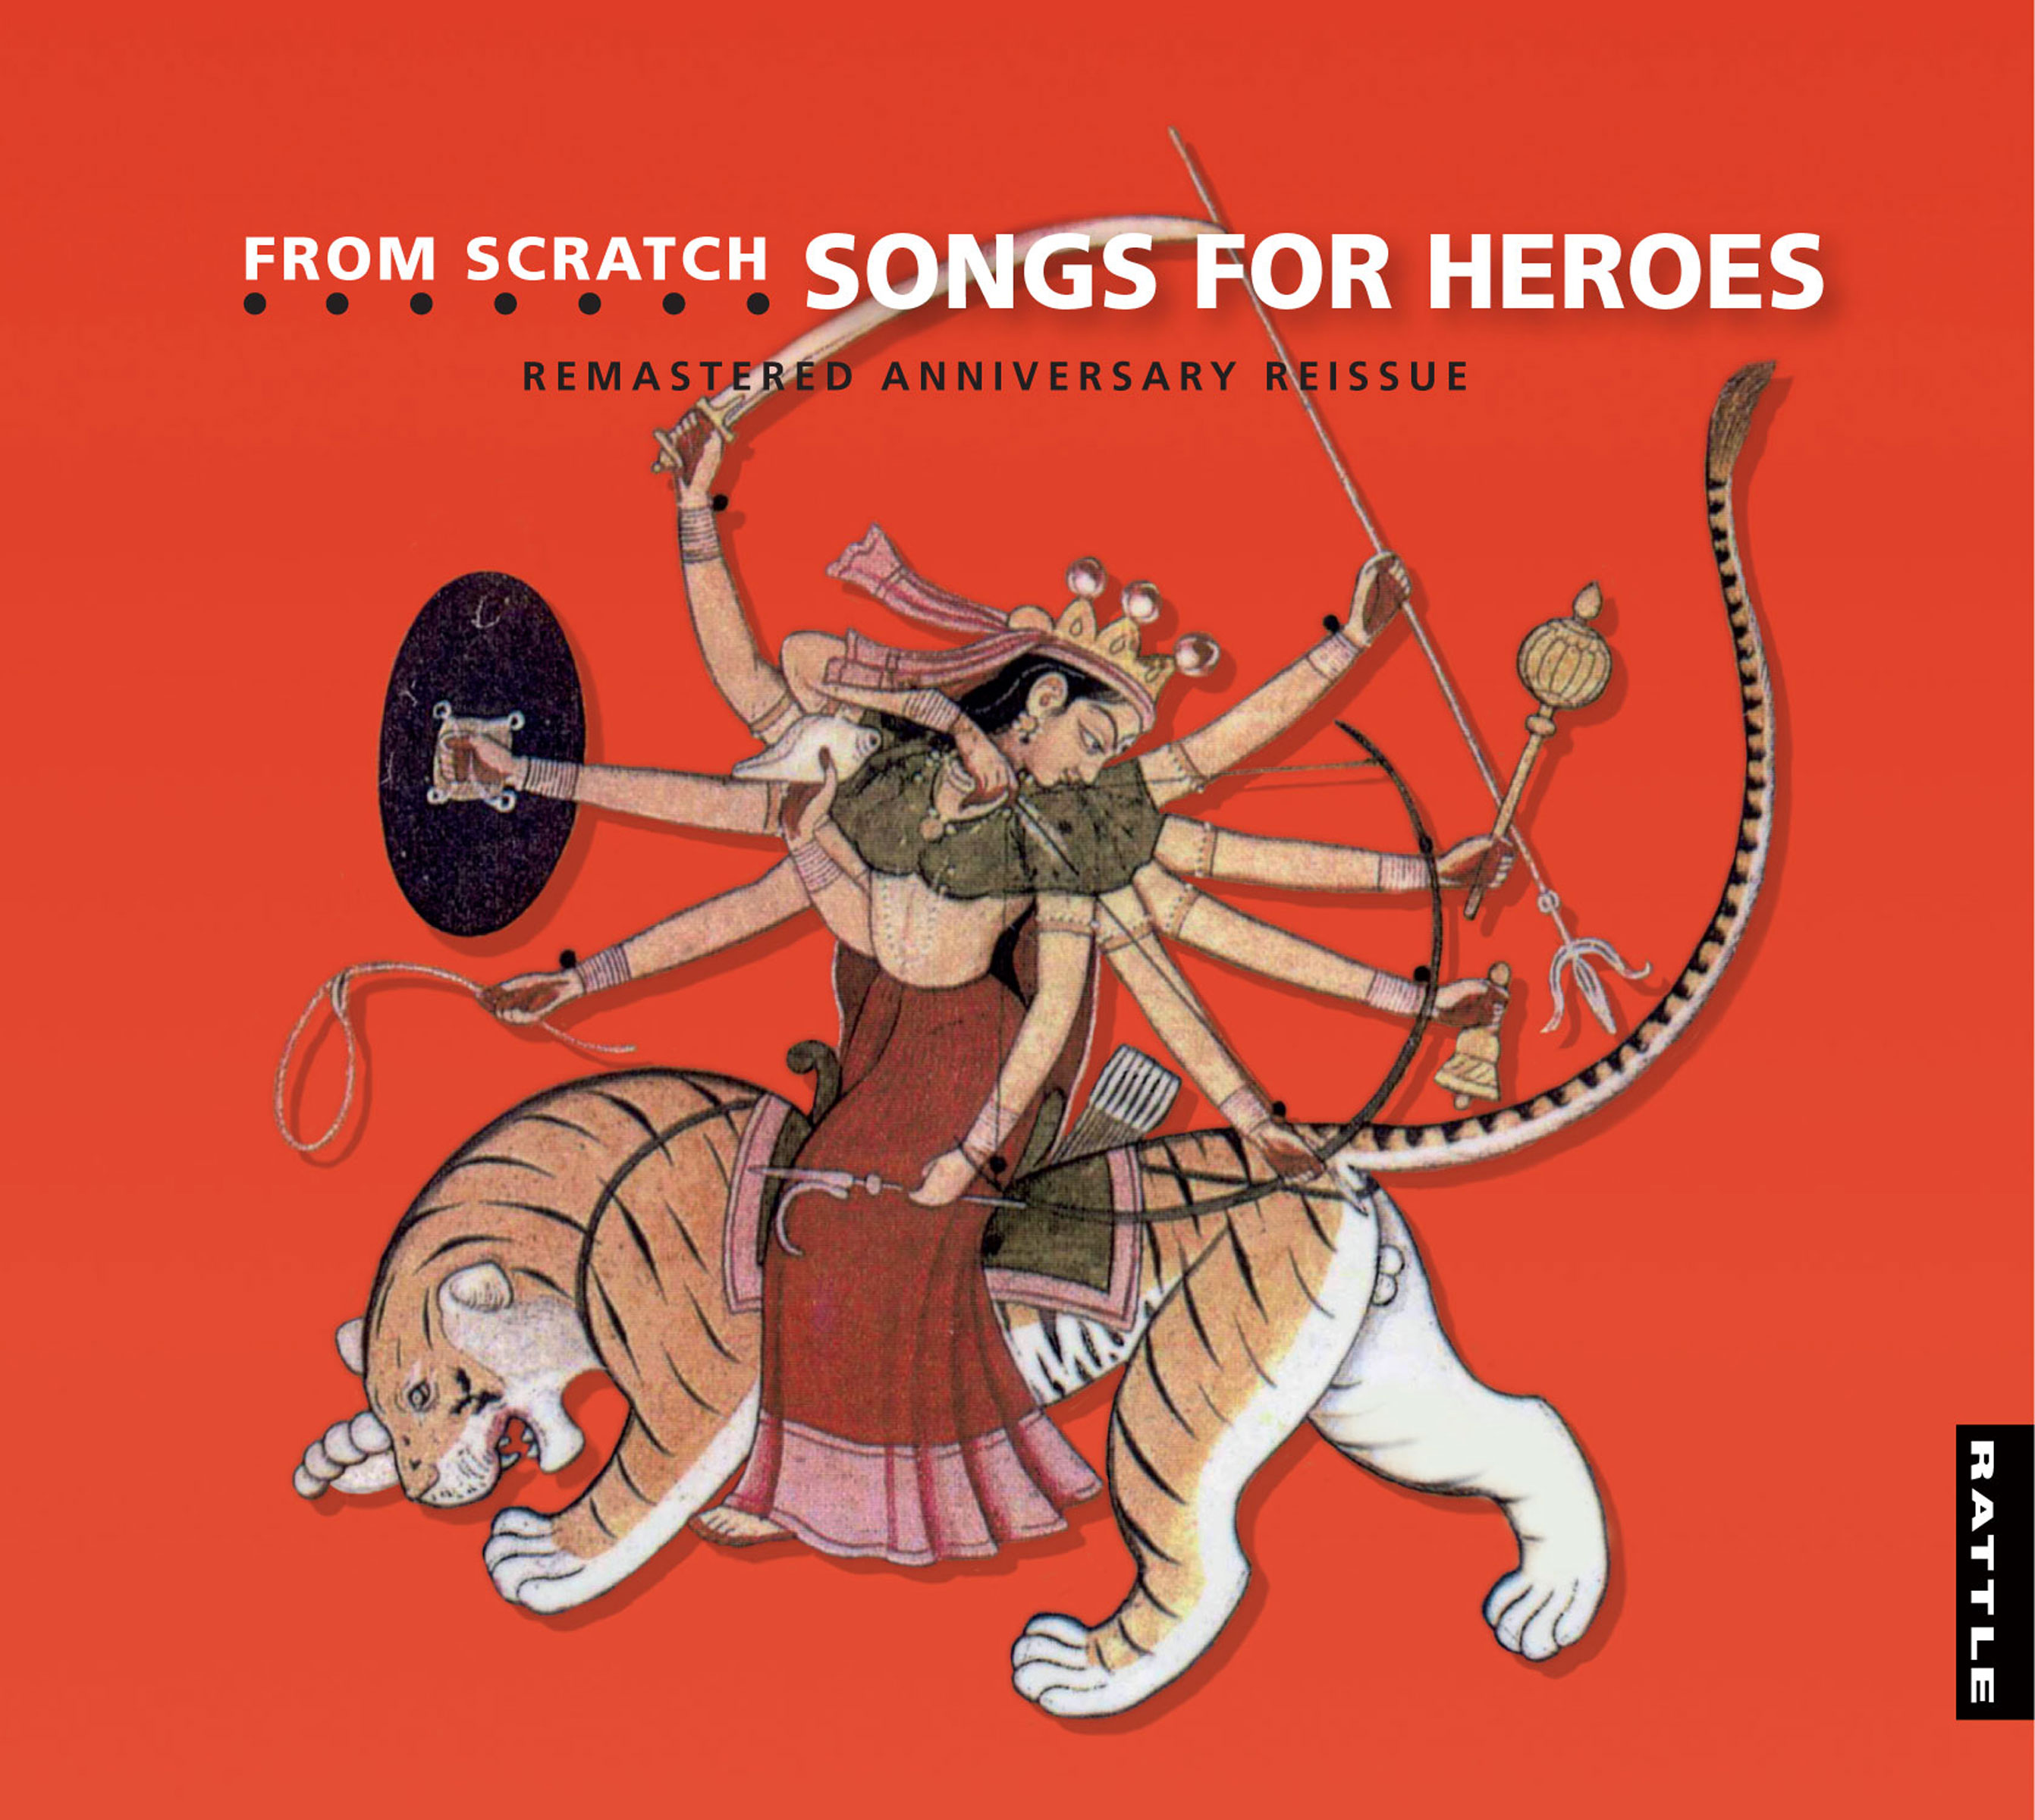 From Scratch | Songs for Heroes - downloadable MP3 ALBUM